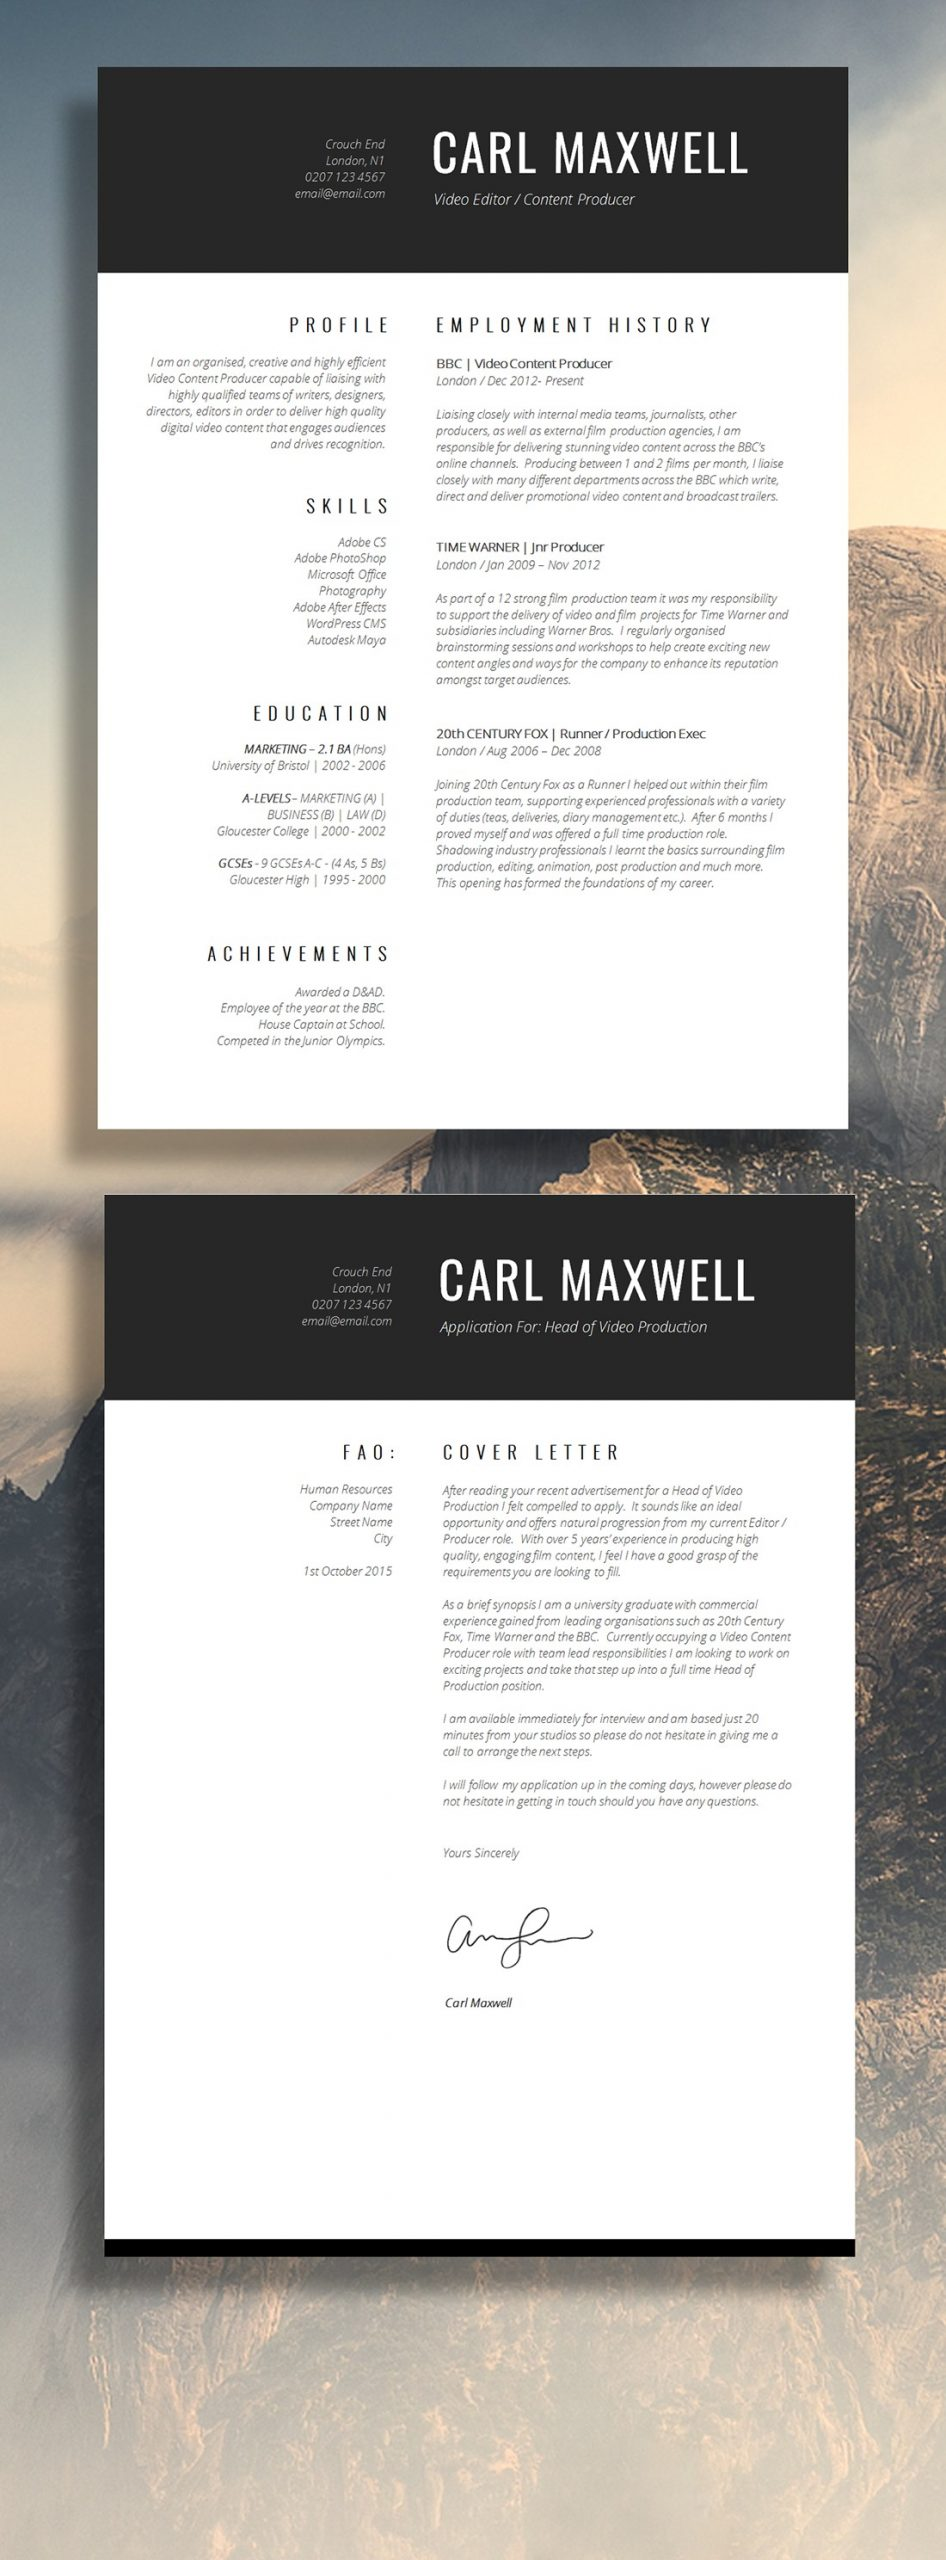 1 page resume template word  12 Brilliant CV Designs That You'll Want To Steal… | Guru - 1 page resume template word